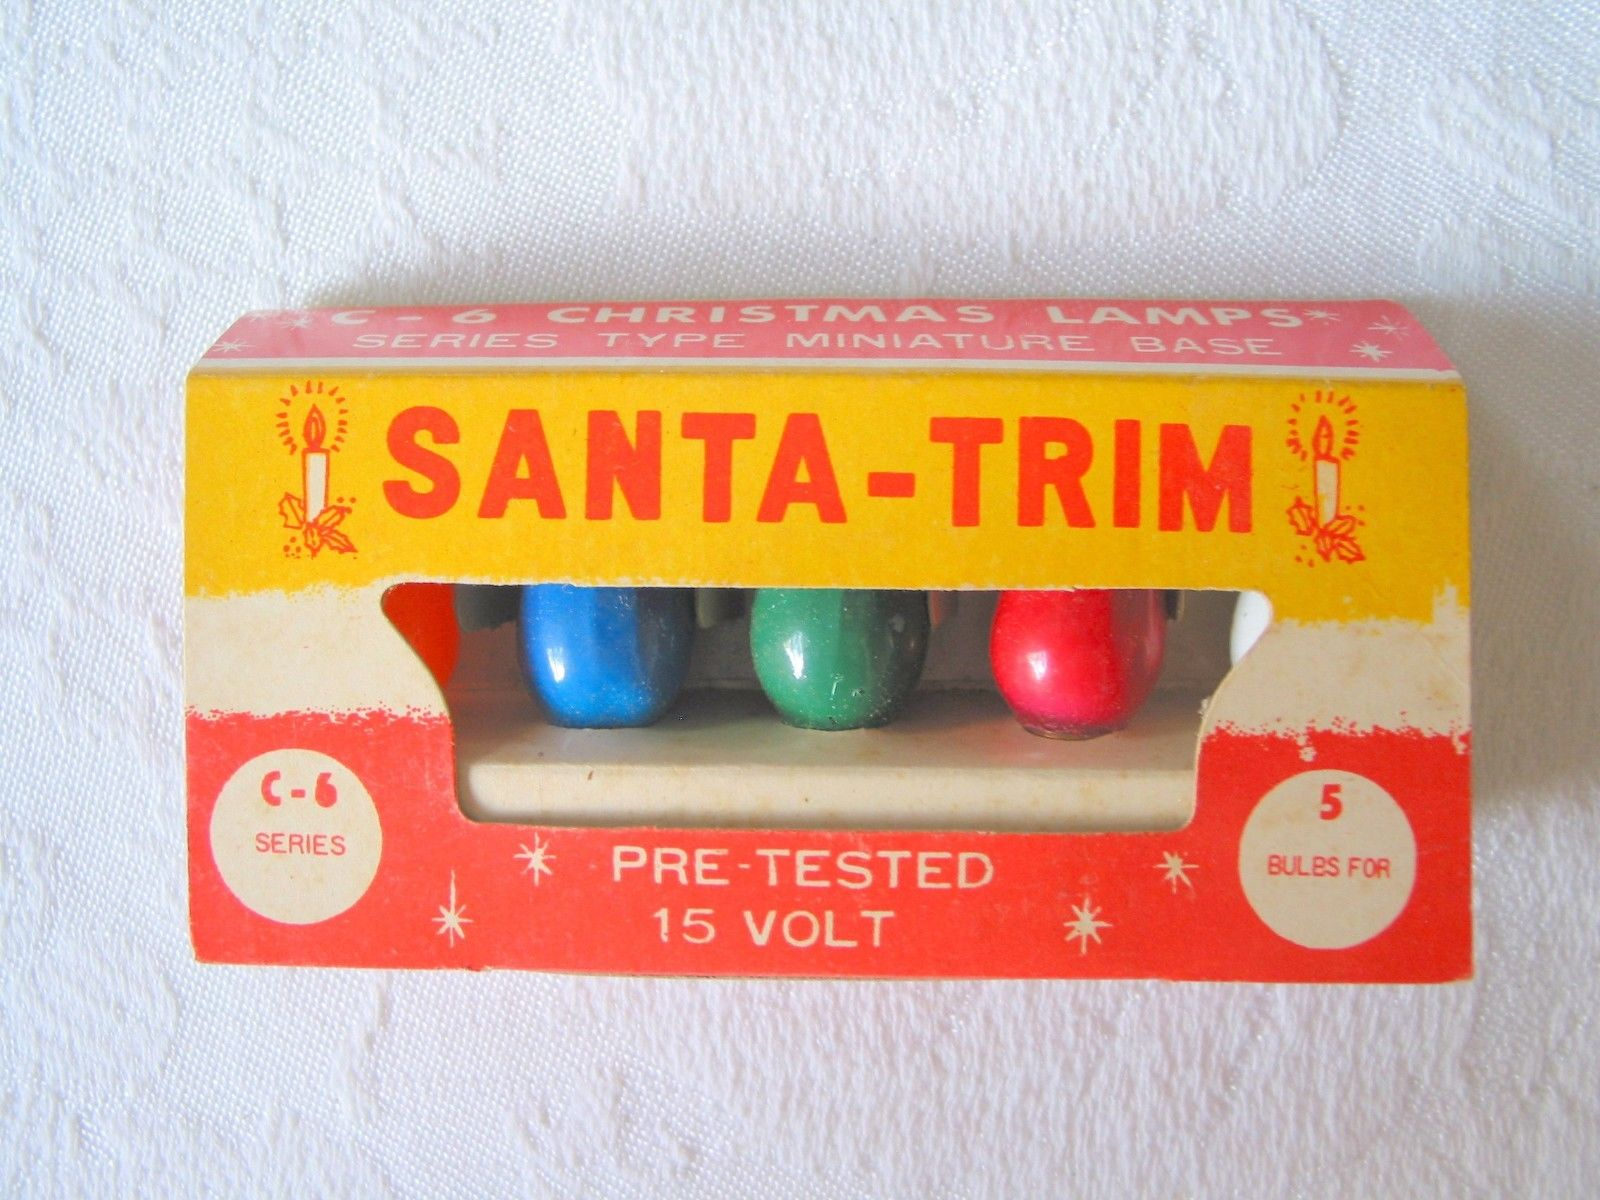 Santa-Trim Christmas Lights